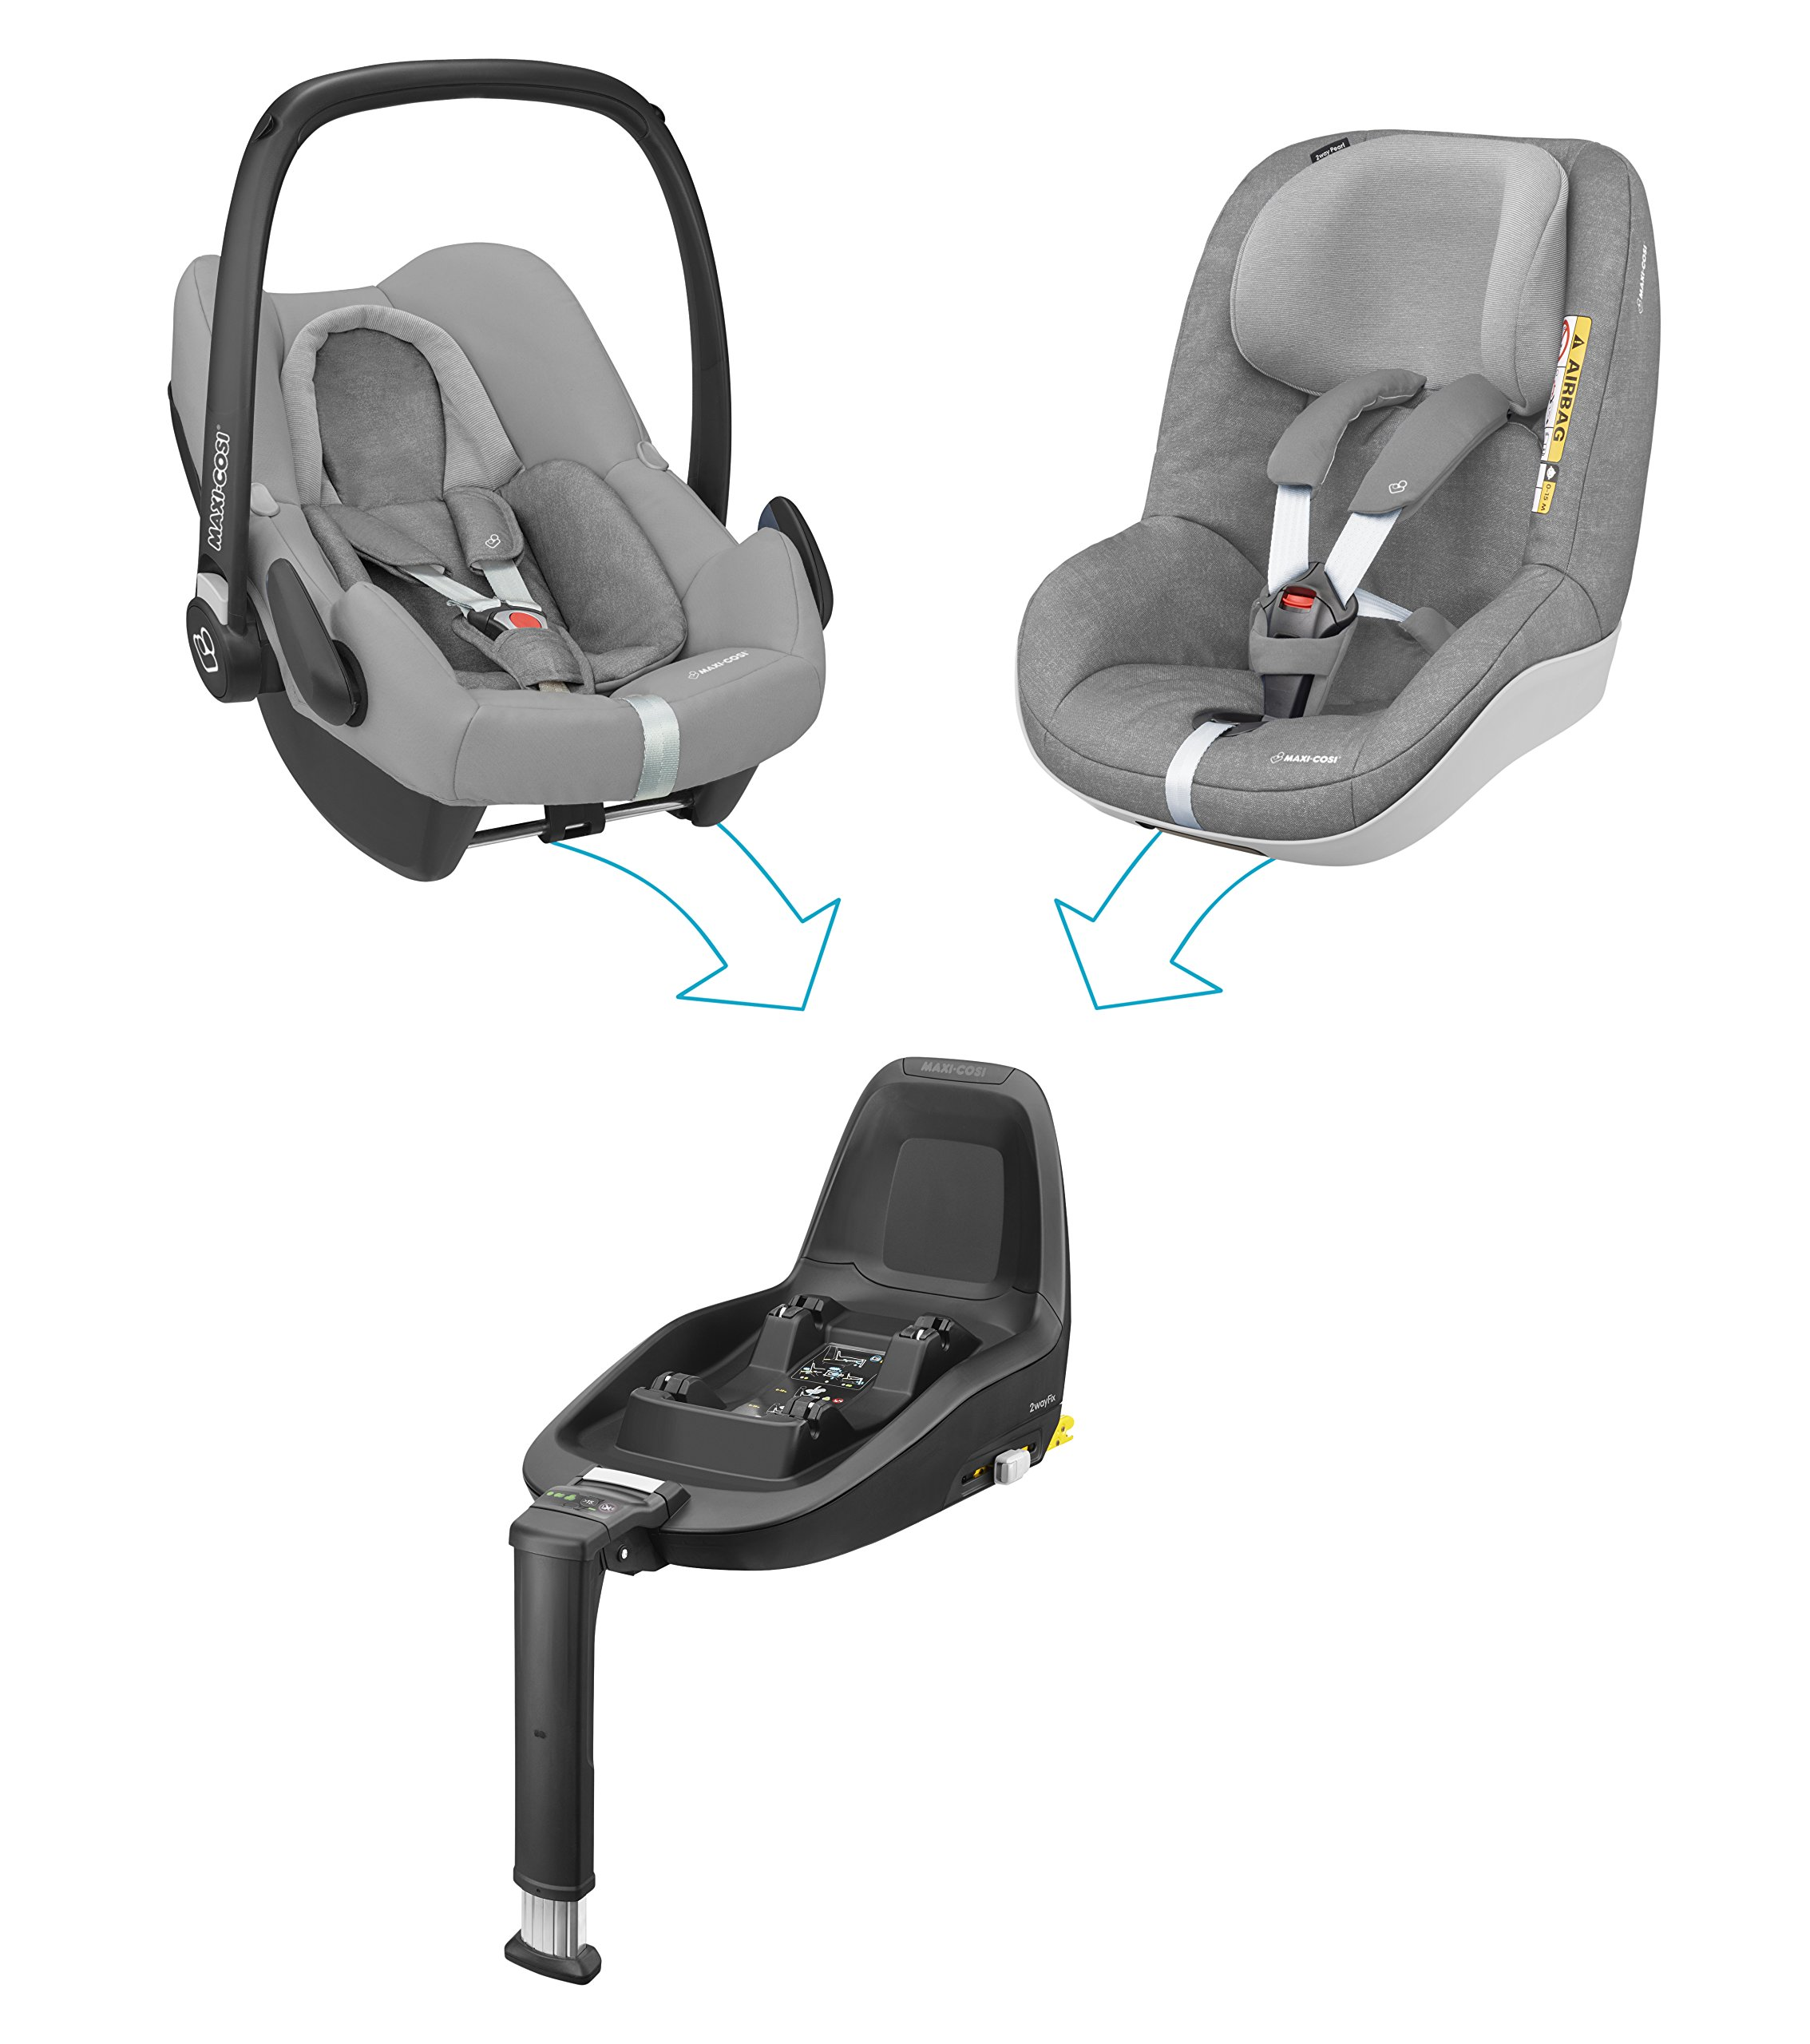 Maxi-Cosi Rock i-Size Baby Car Seat, Nomad Grey with Raincover for Baby Car Seat, Transparent and Back Seat Car Mirror Maxi-Cosi High safety rating: complies with the latest i-Size (R129) car seat legislation Baby-hug inlay offers a better fit and laying position for new-born's Designed to fit onto the maxi-cosi pebble plus, pebble and cabriofix baby car seats 6